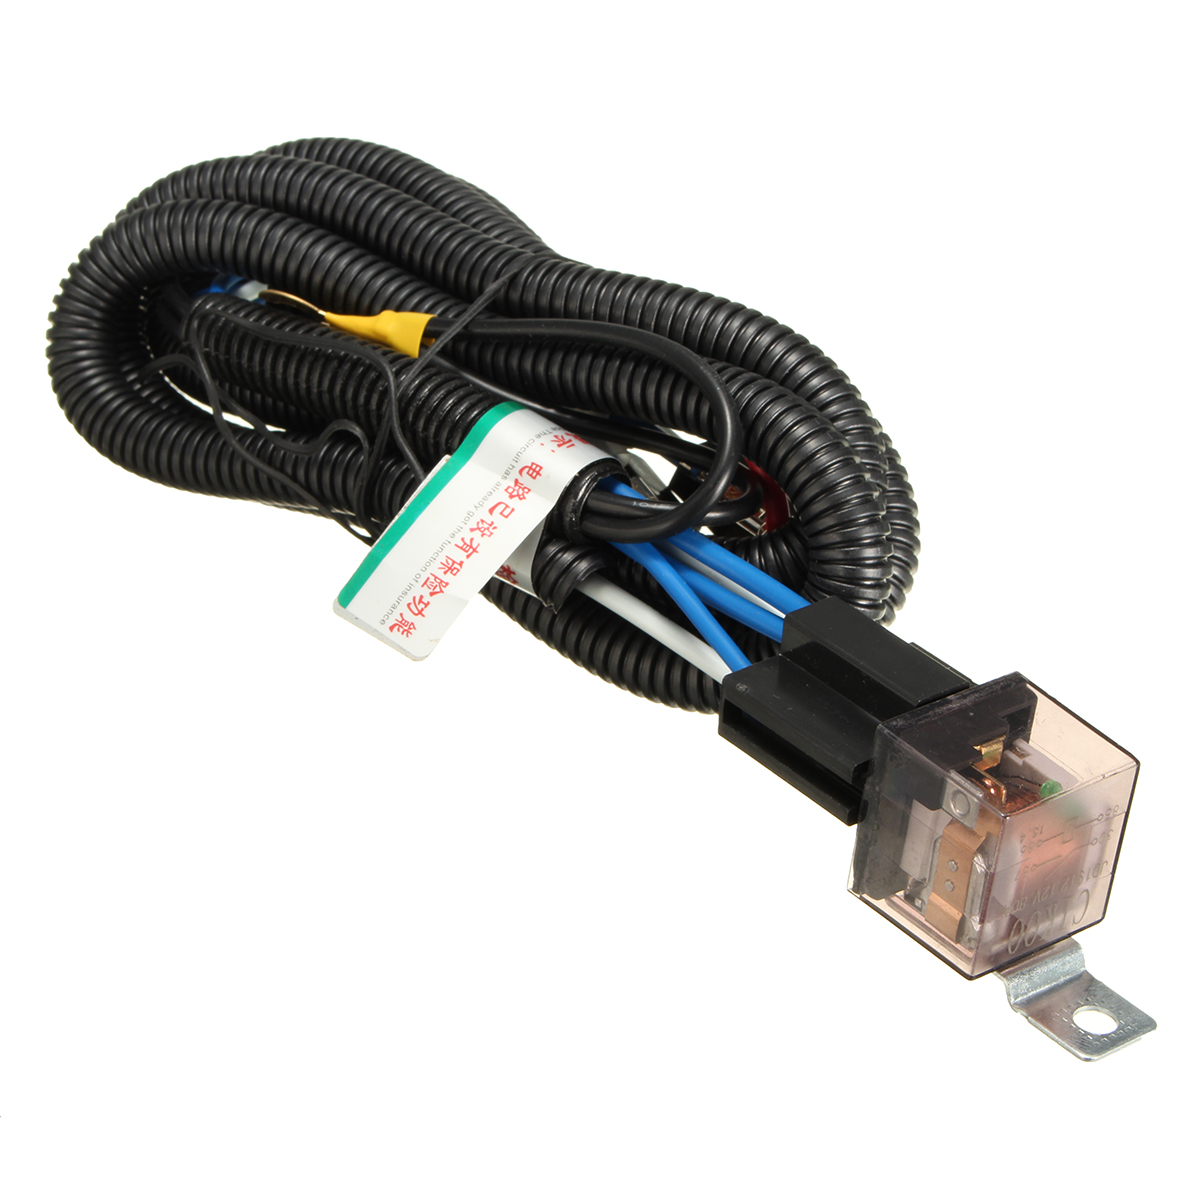 Car Horn Wiring Harness : Car horn relay wiring harness kit for grille mount blast